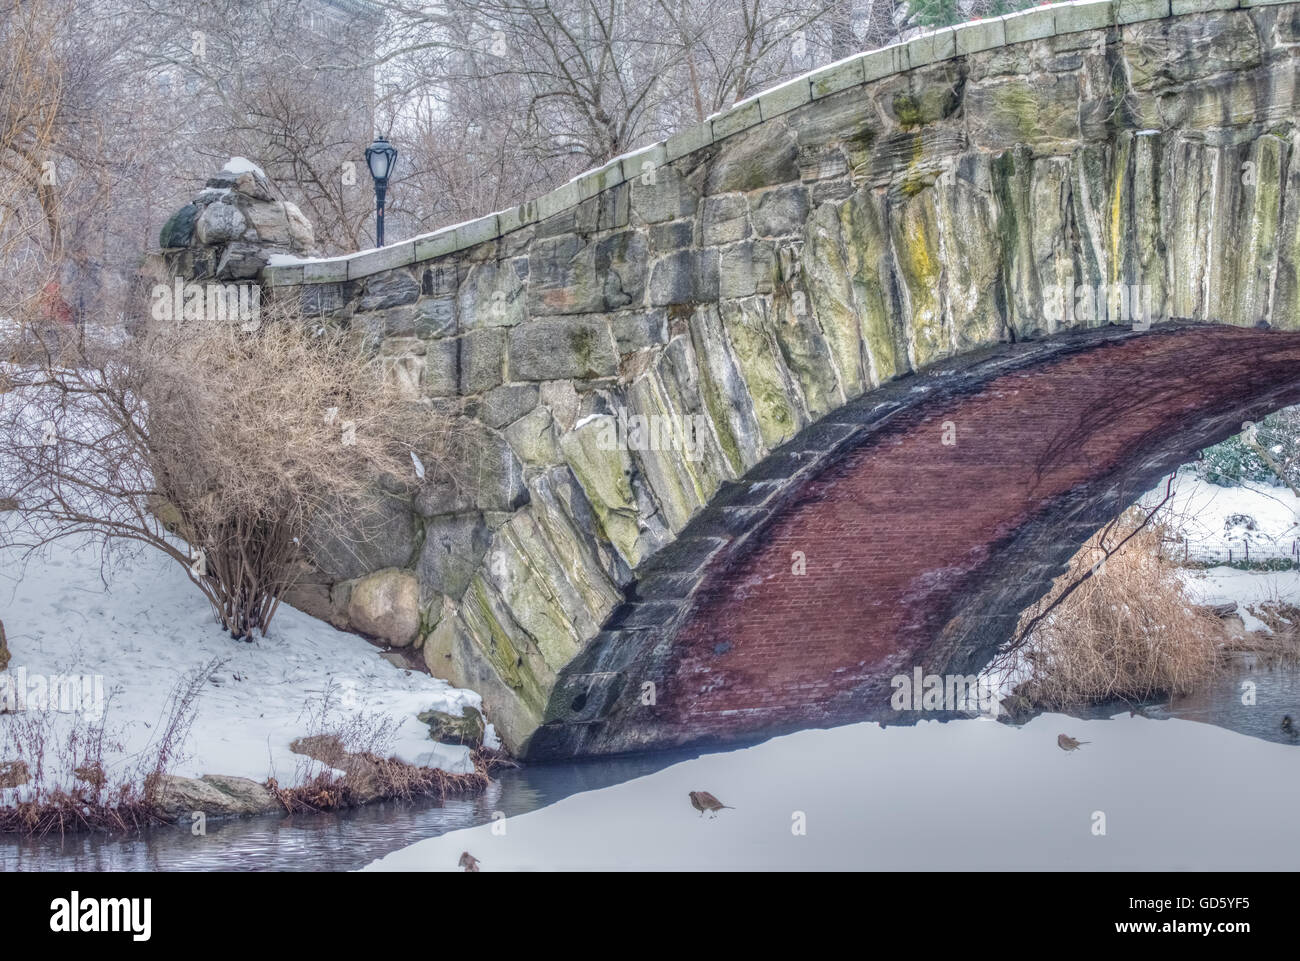 The Gapstow Bridge a gracefully curved stone bridge crossing the Pond,  Central Park, New York, NY - Stock Image